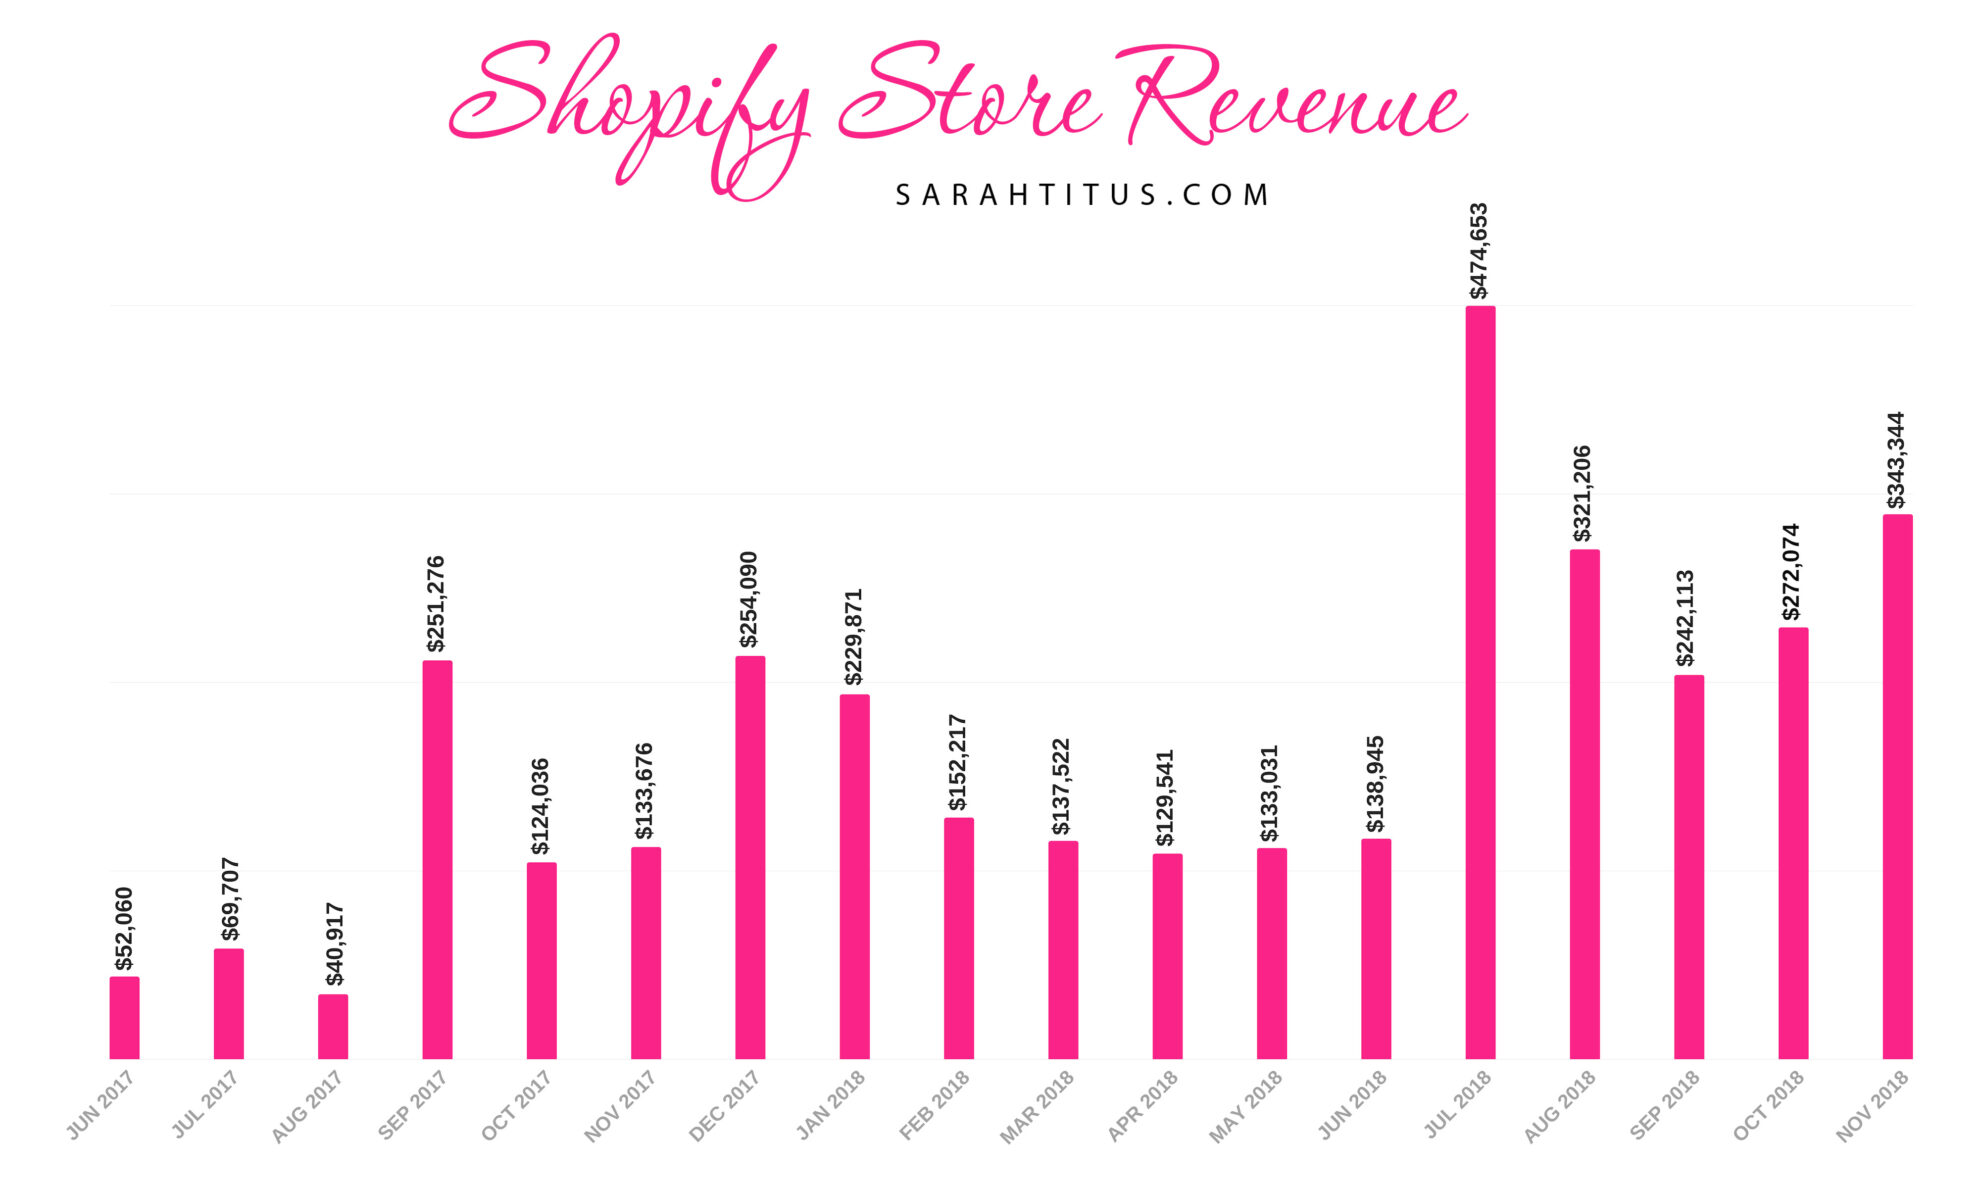 Is Shopify worth it? Considering I make $2.7 million/year in my Shopify store selling digital products on autopilot, I'd say HECK YAH! Check out my most recent income report. #shopifyincomereport #incomereport #isshopifyworthit #milliondollarshop